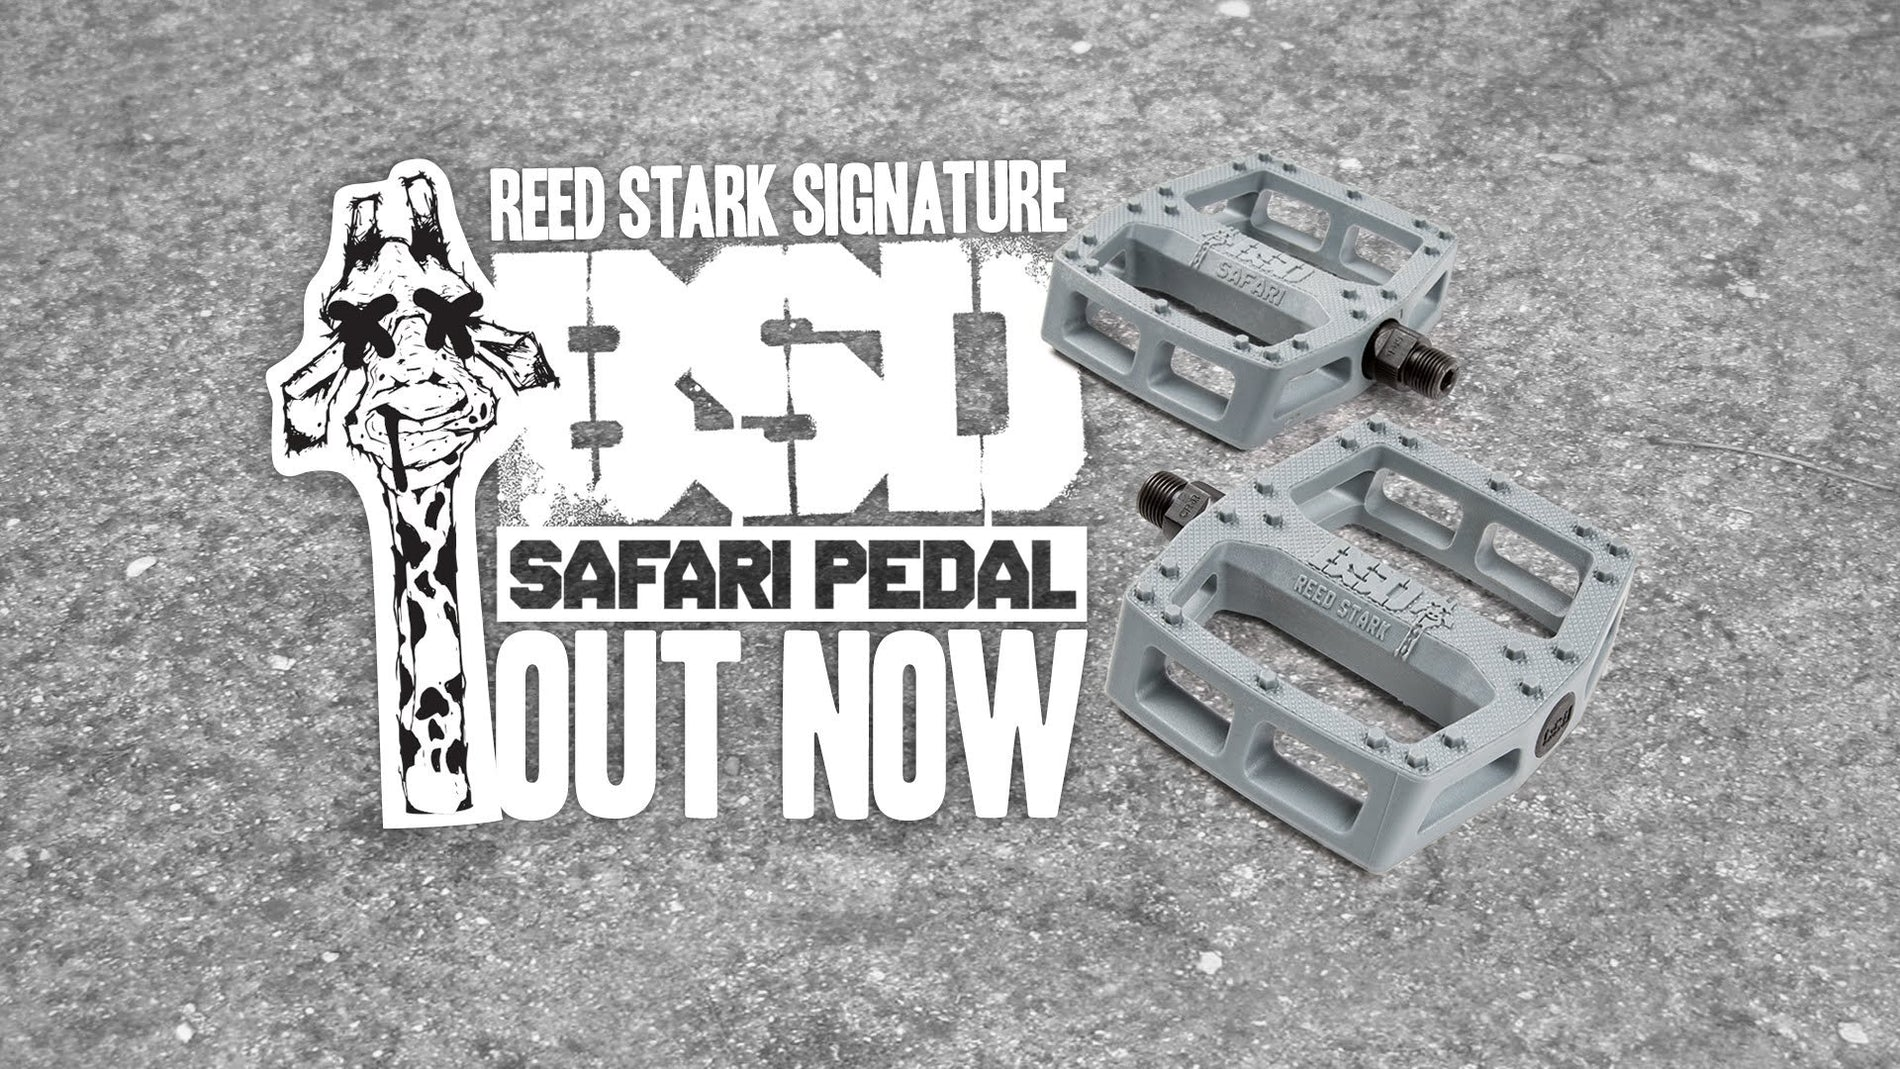 Reed Stark Safari Pedal